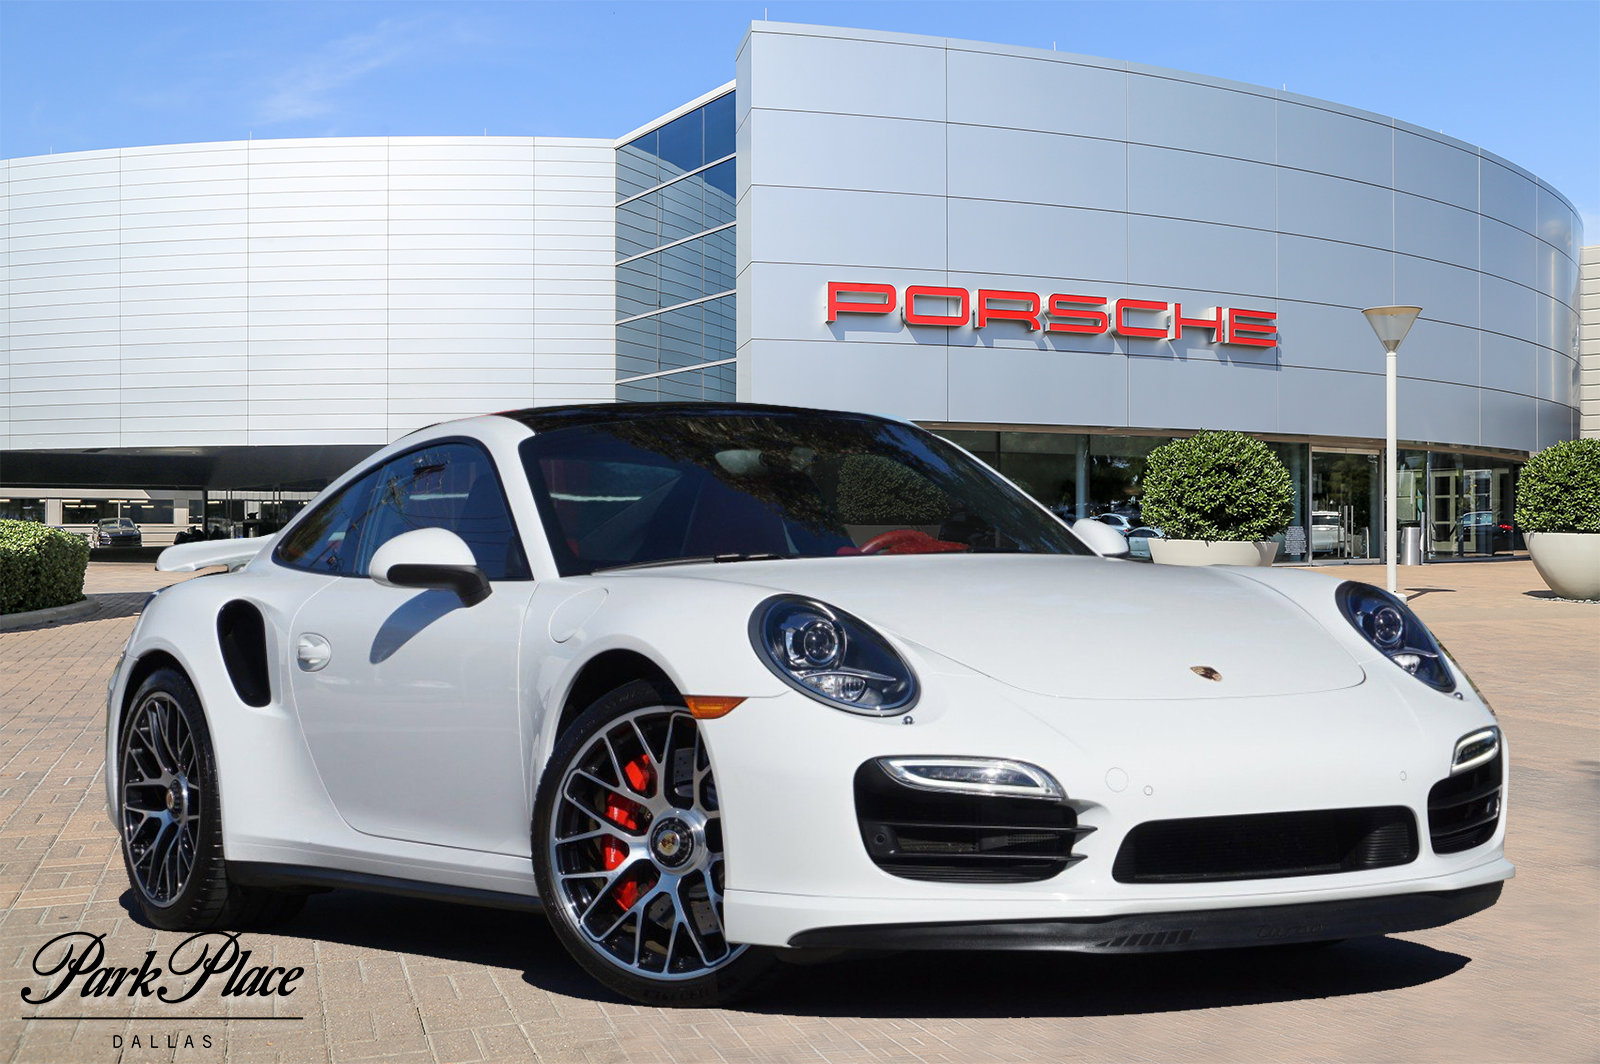 2015 Porsche 911 Turbo image